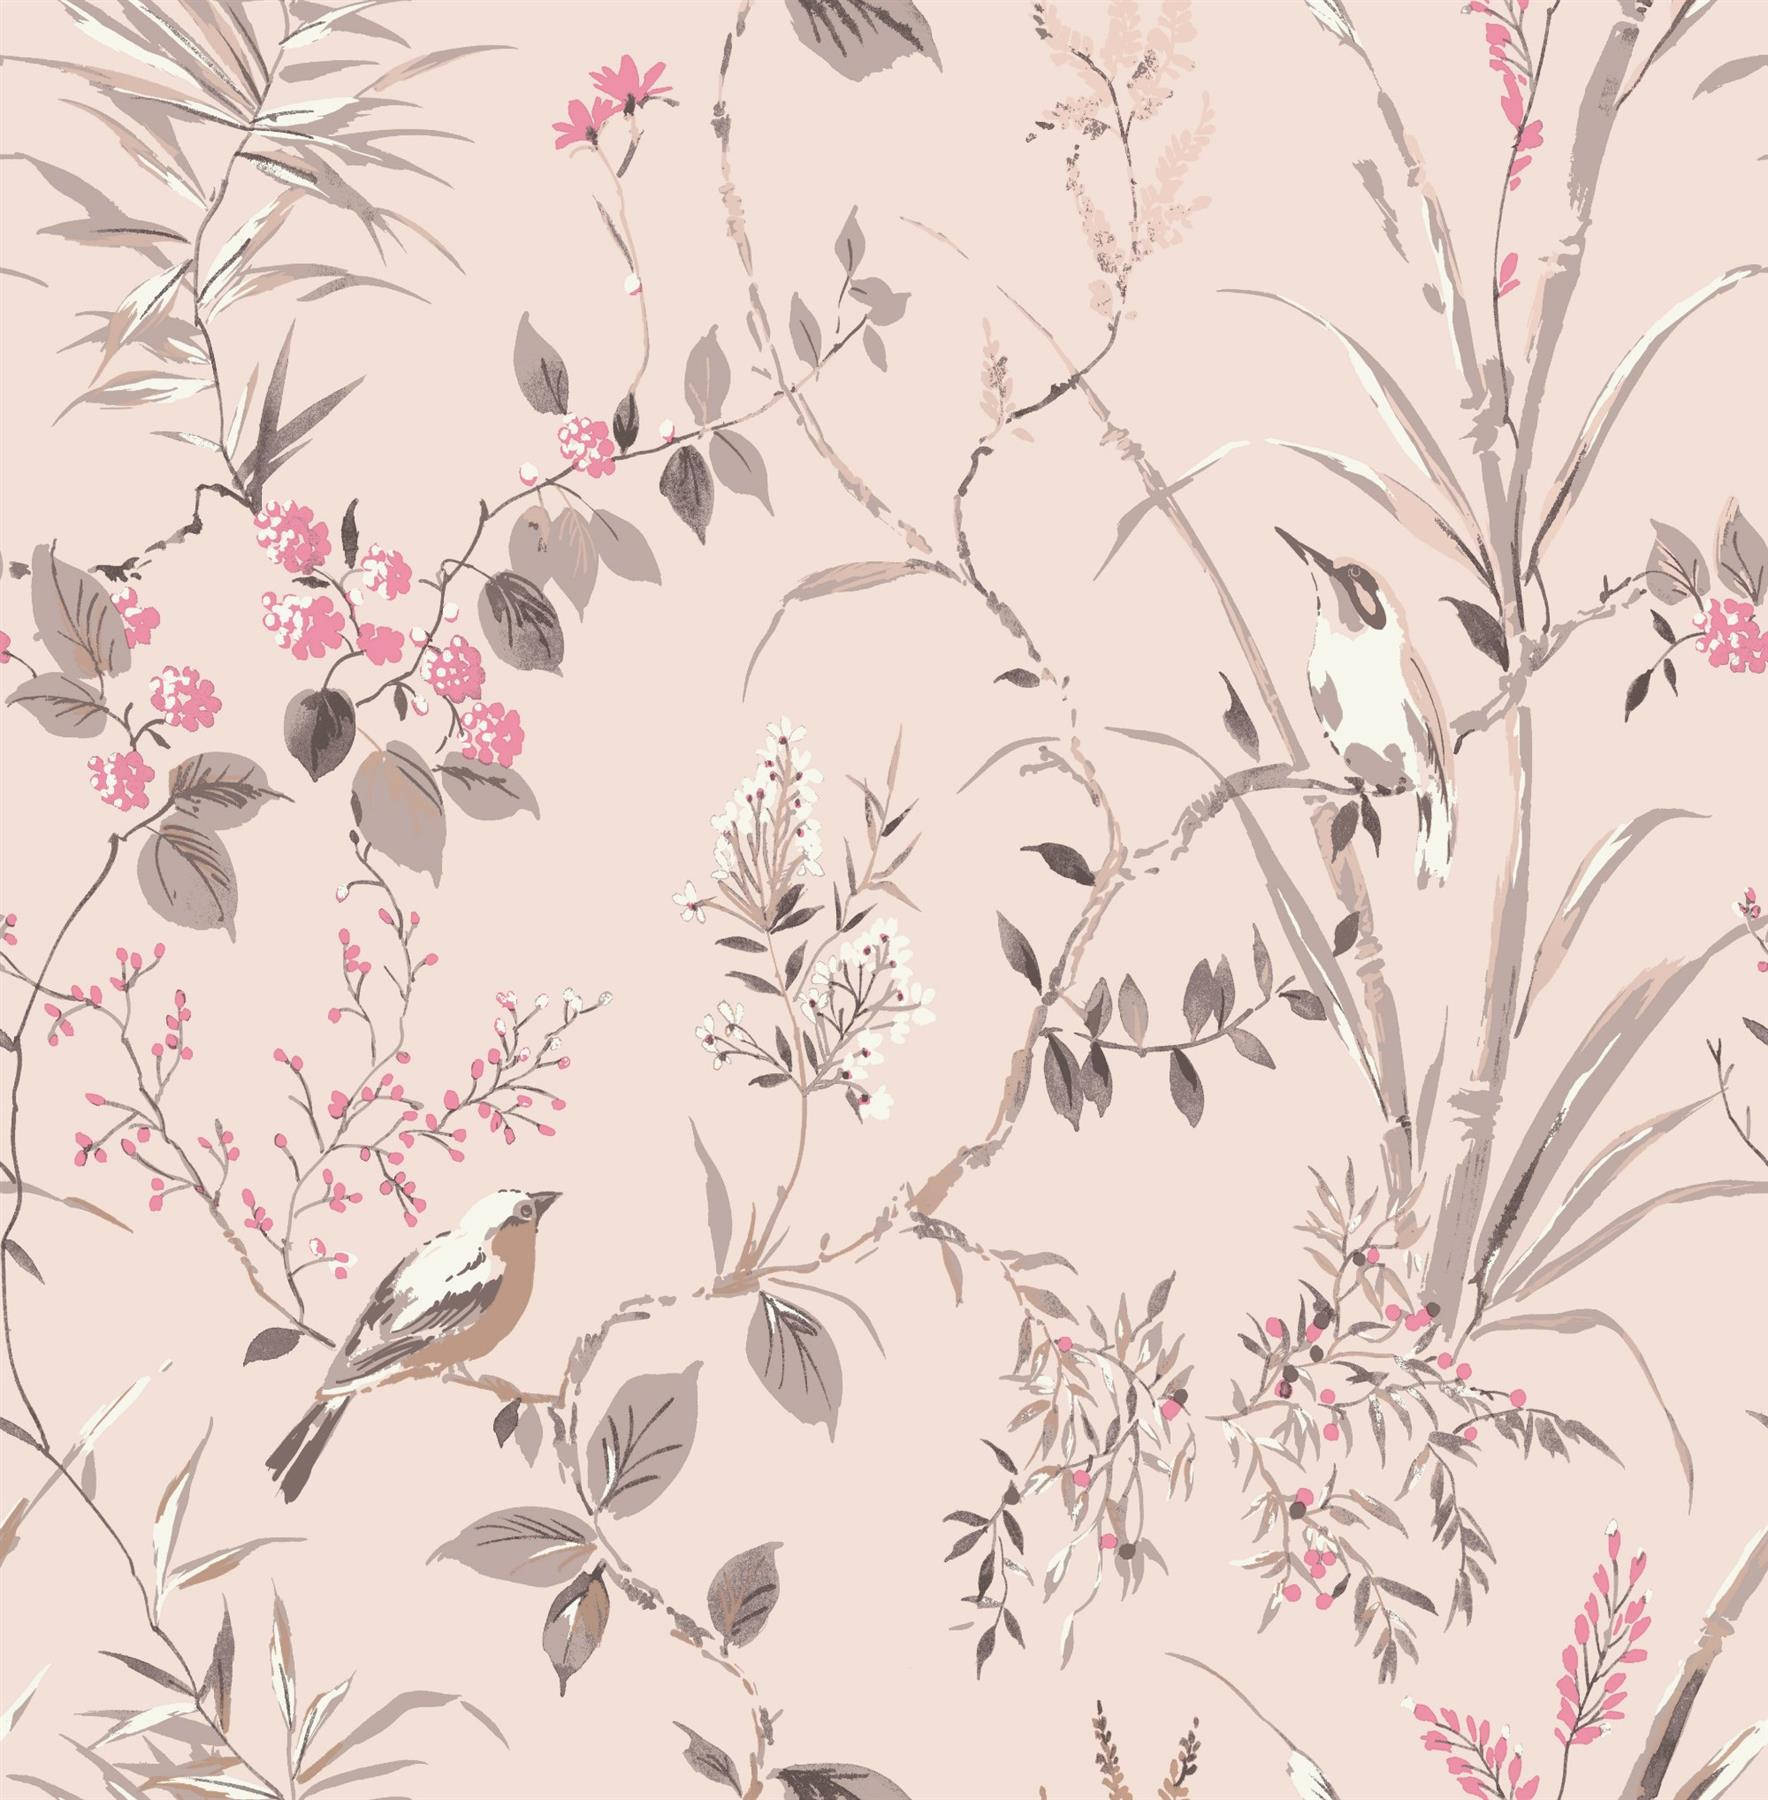 Floral Birds Wallpaper Blush Fuchsia Metallic Flower Shimmer Fine